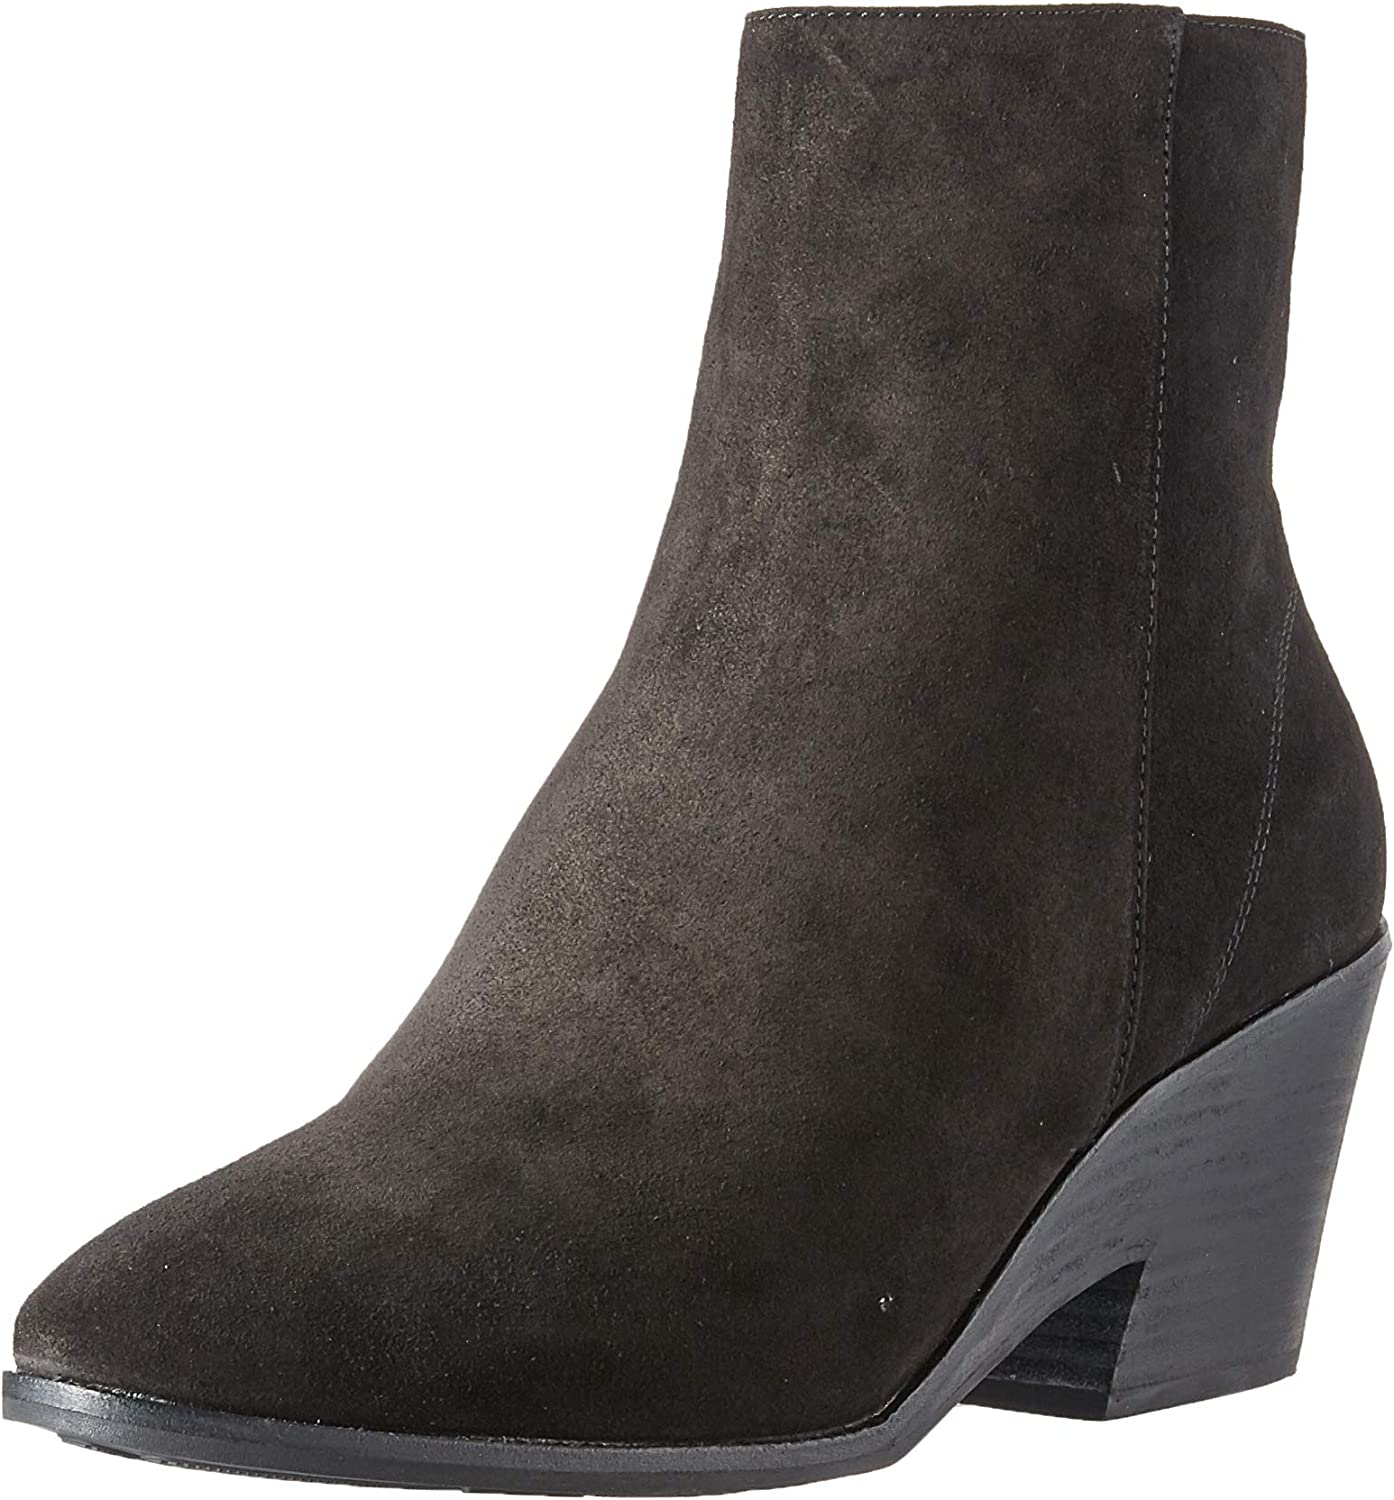 Gentle Souls by Kenneth Cole Women's Blaise Wedge Bootie Fashion Boot